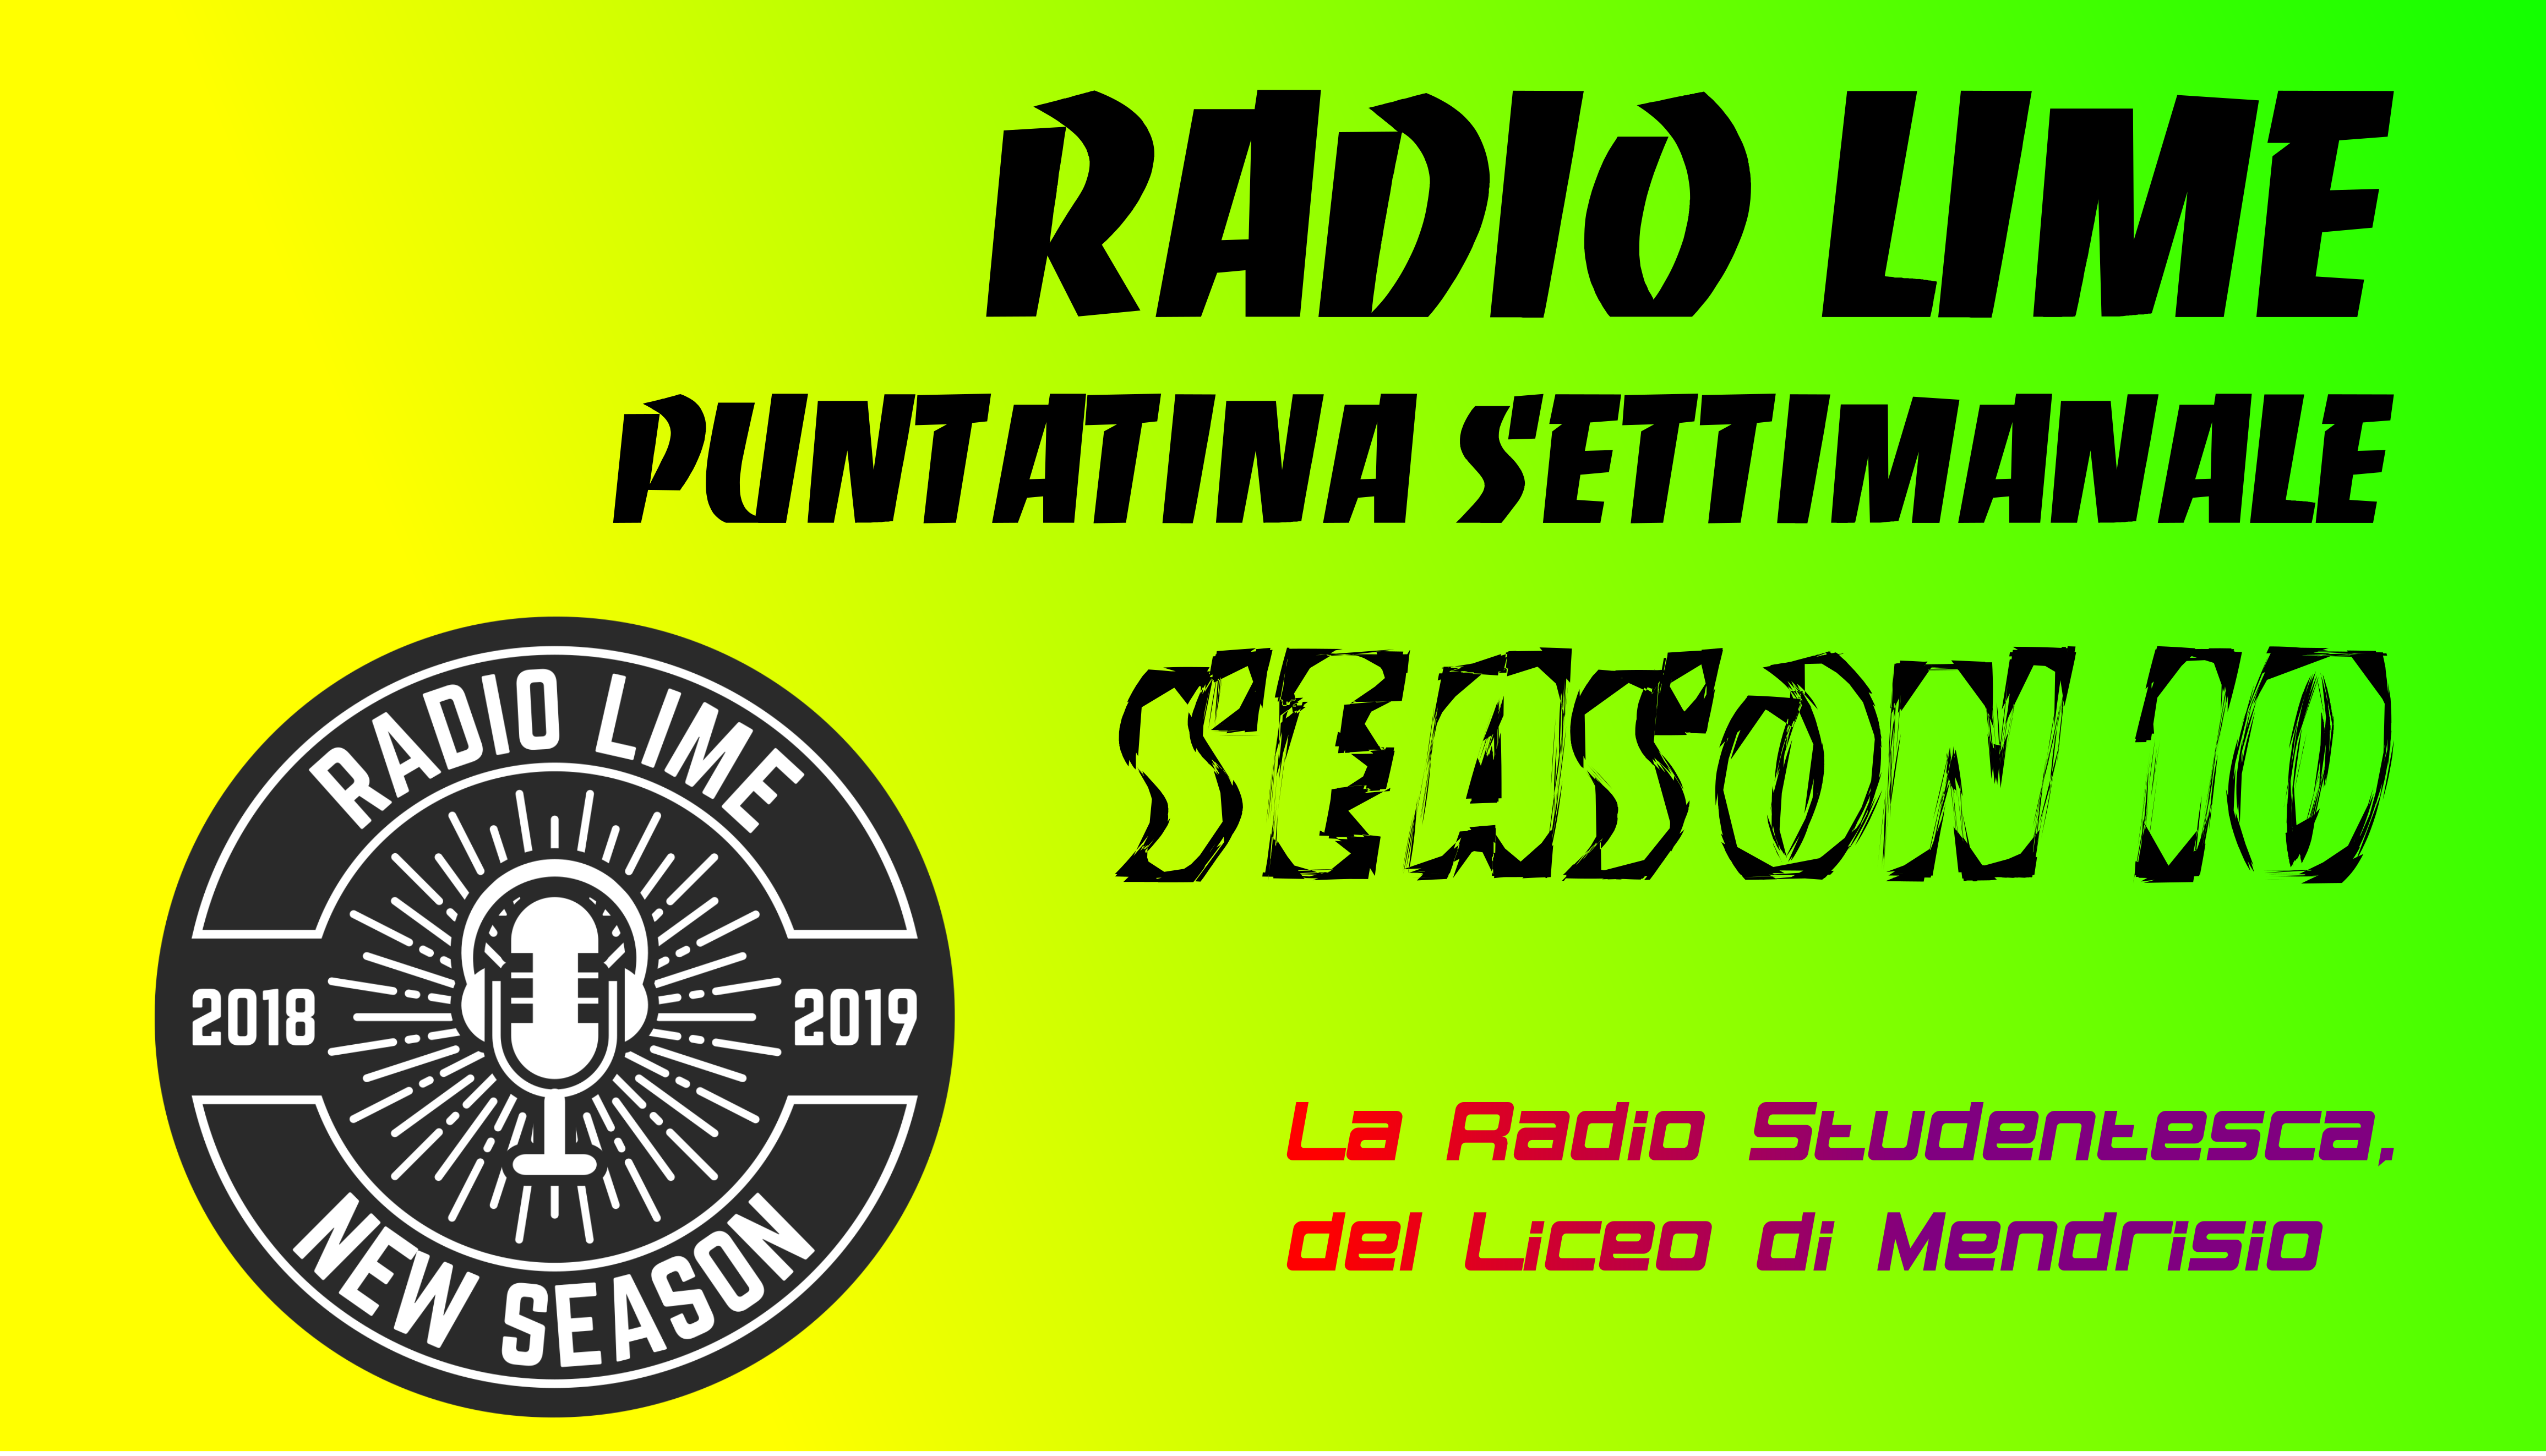 Laptop Radioing Session LiMe - 21/02/2019